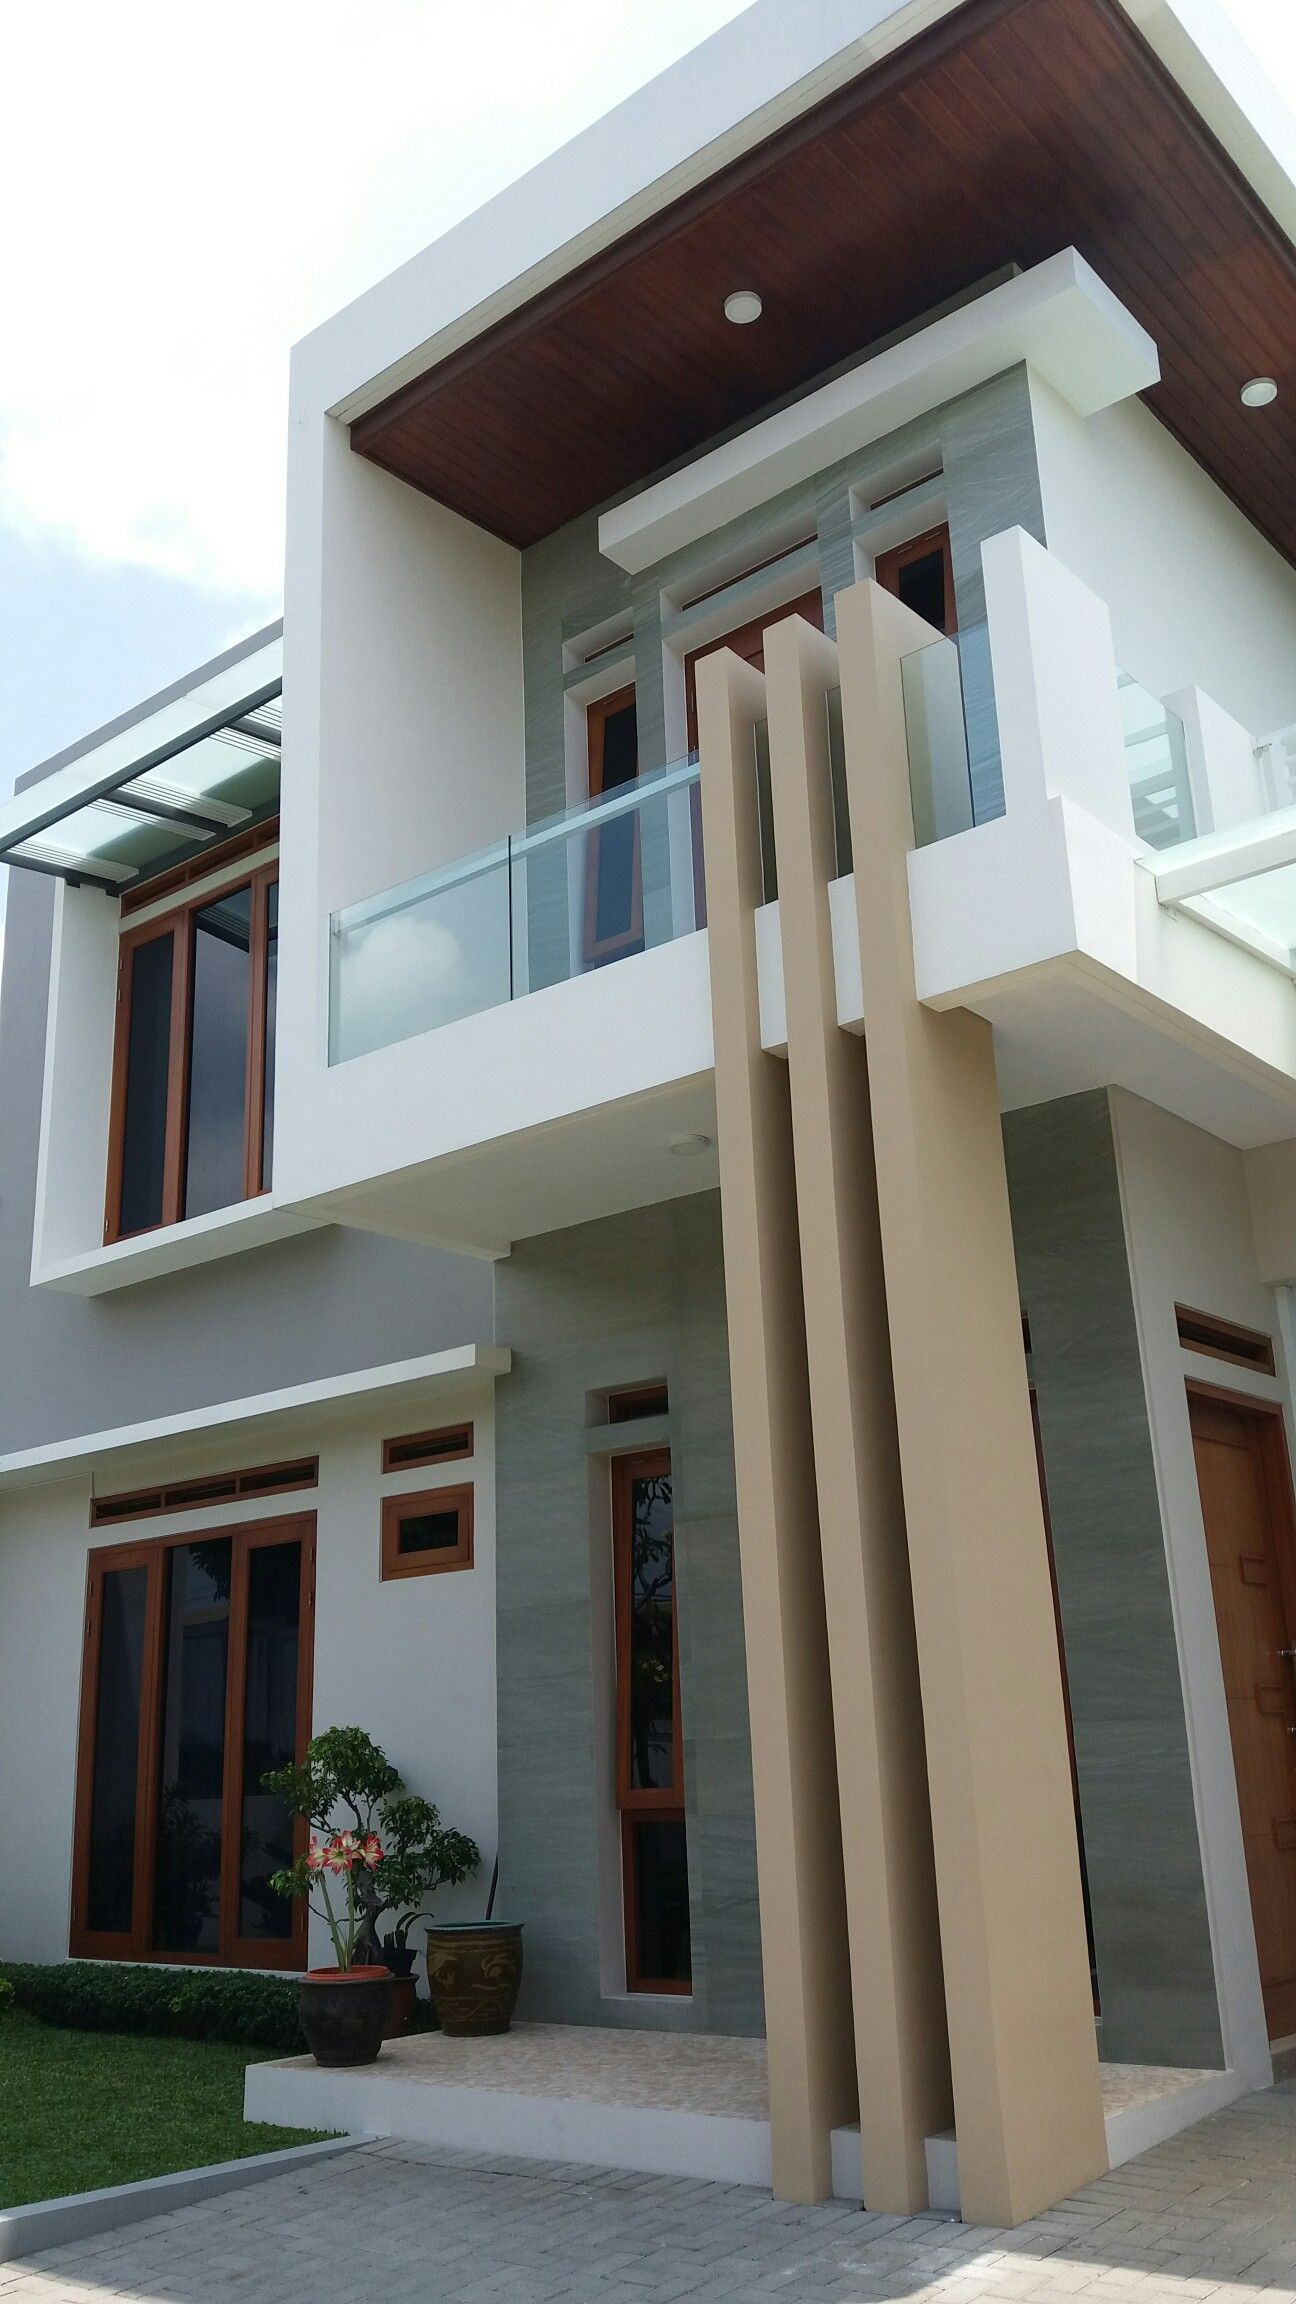 Lihat Rumah Bagus Pin By Aman On Home Decor House Design Modern House Design